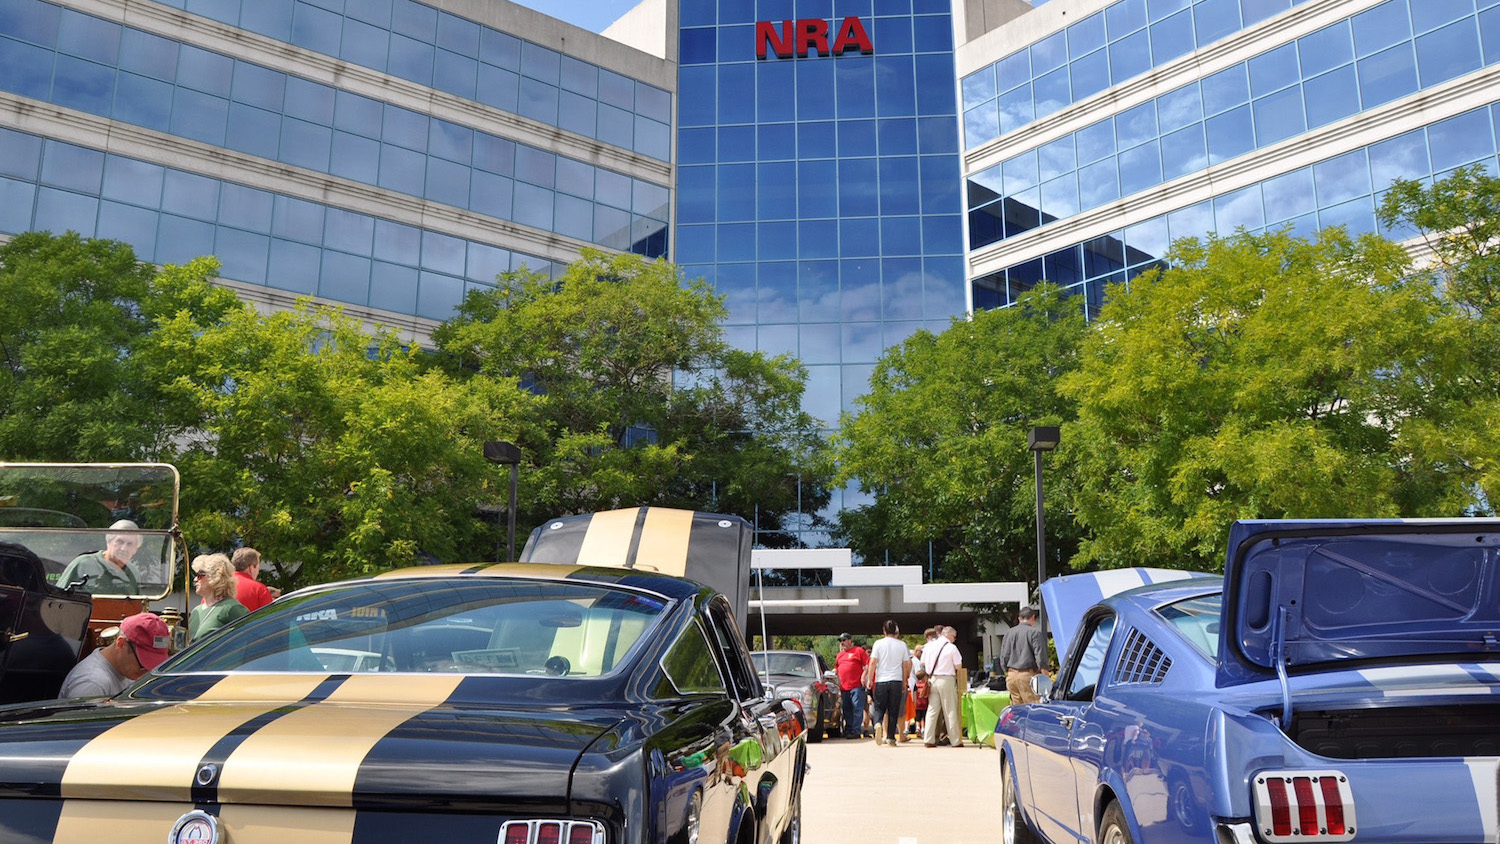 Start Your Engines! Third Annual NRA Car & Truck Show Scheduled For Sept. 24